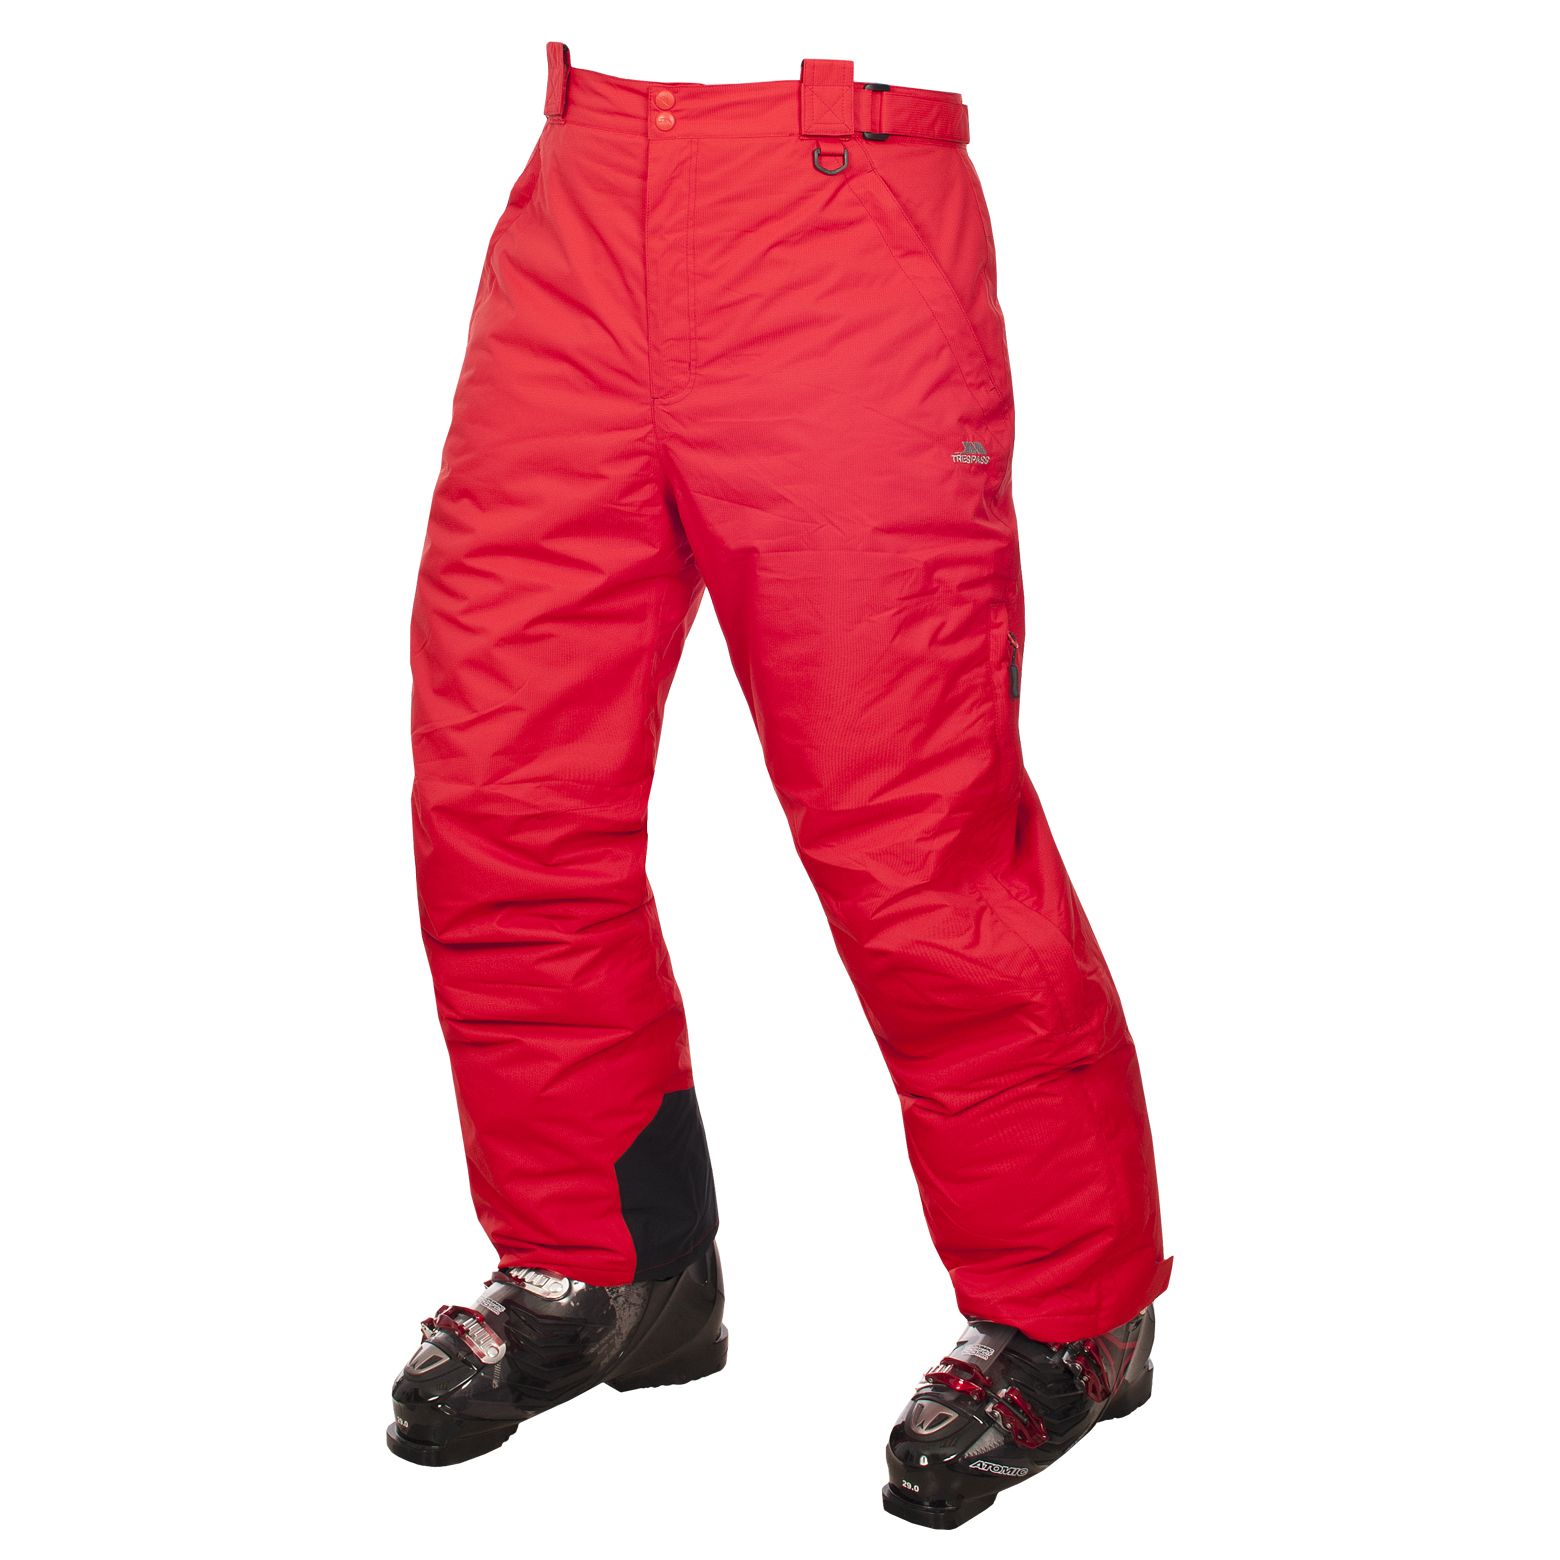 Women's and Men's Ski Trousers Up For Grabs